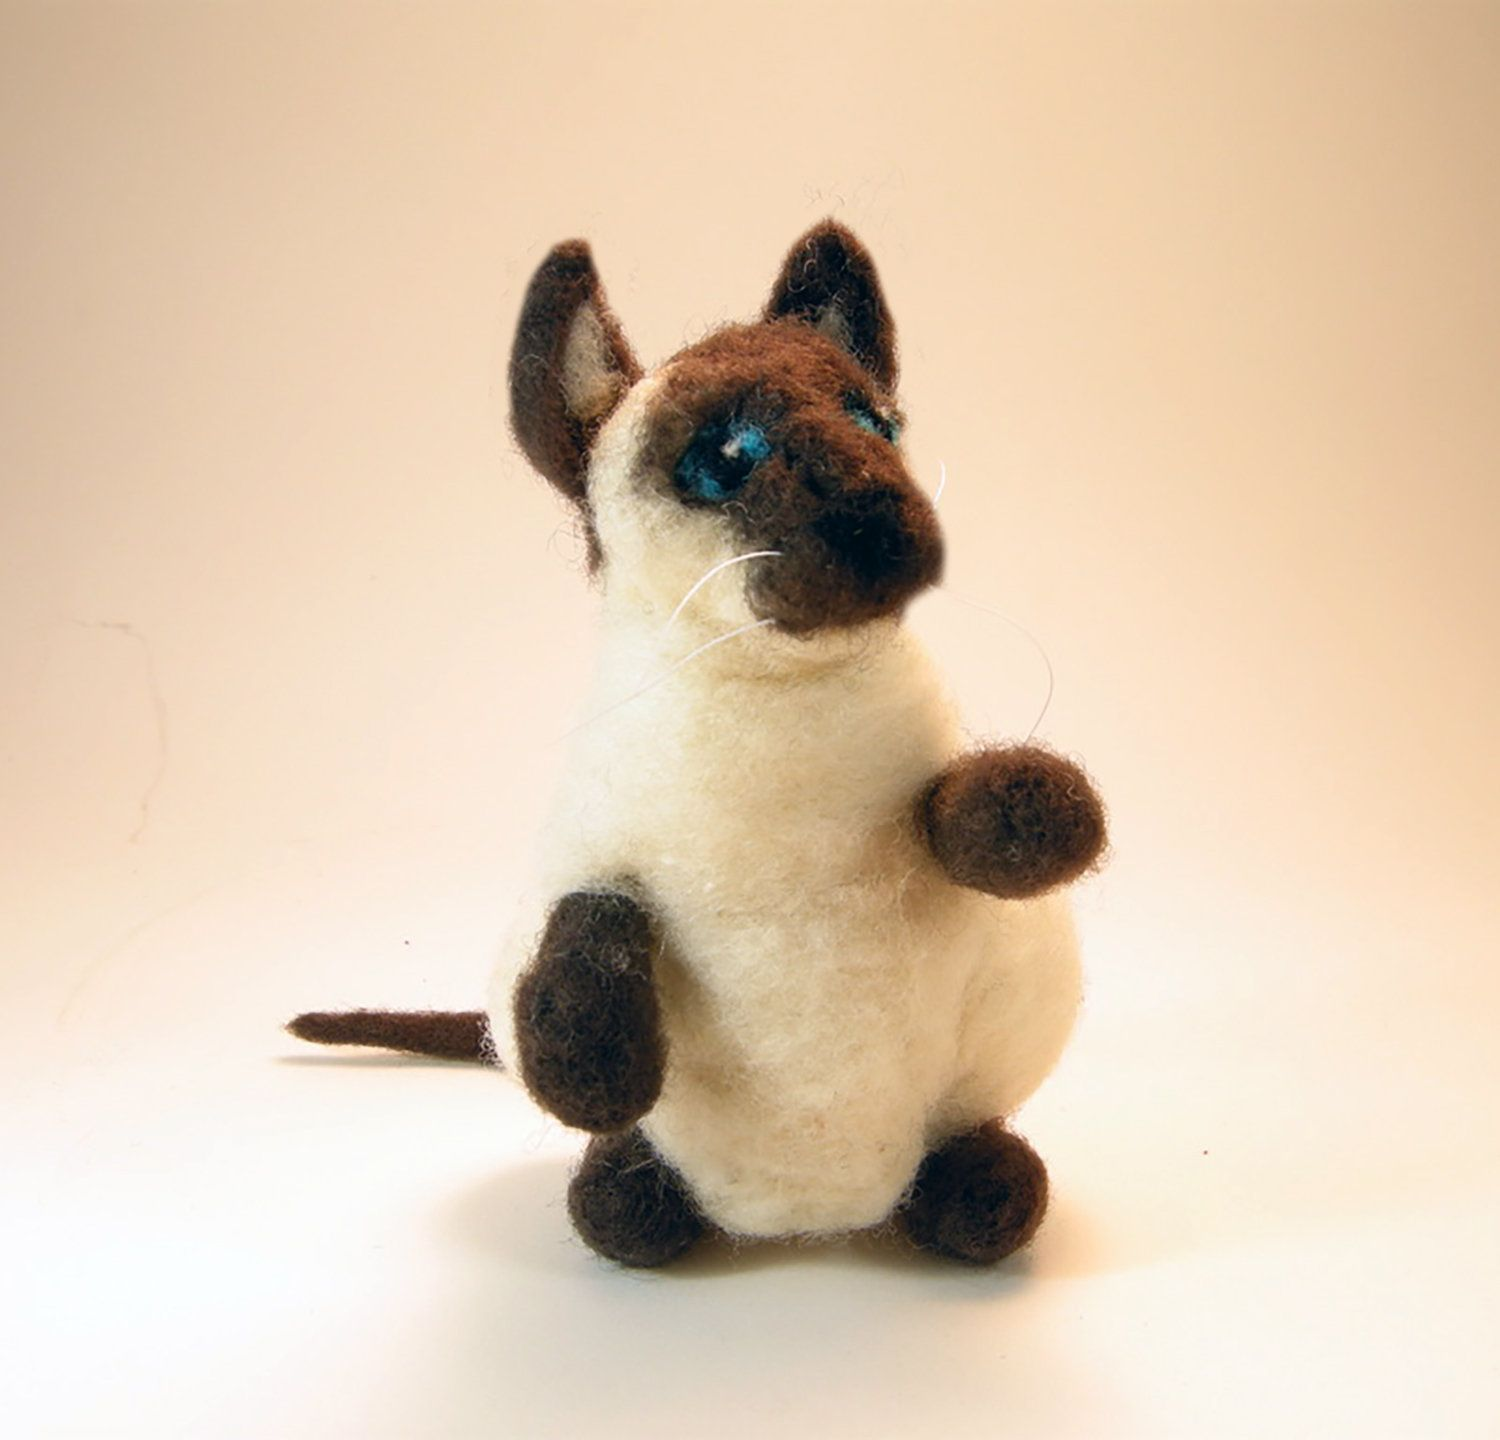 Cat/Siamese cat/Siamese kitty/needle felted sits upright